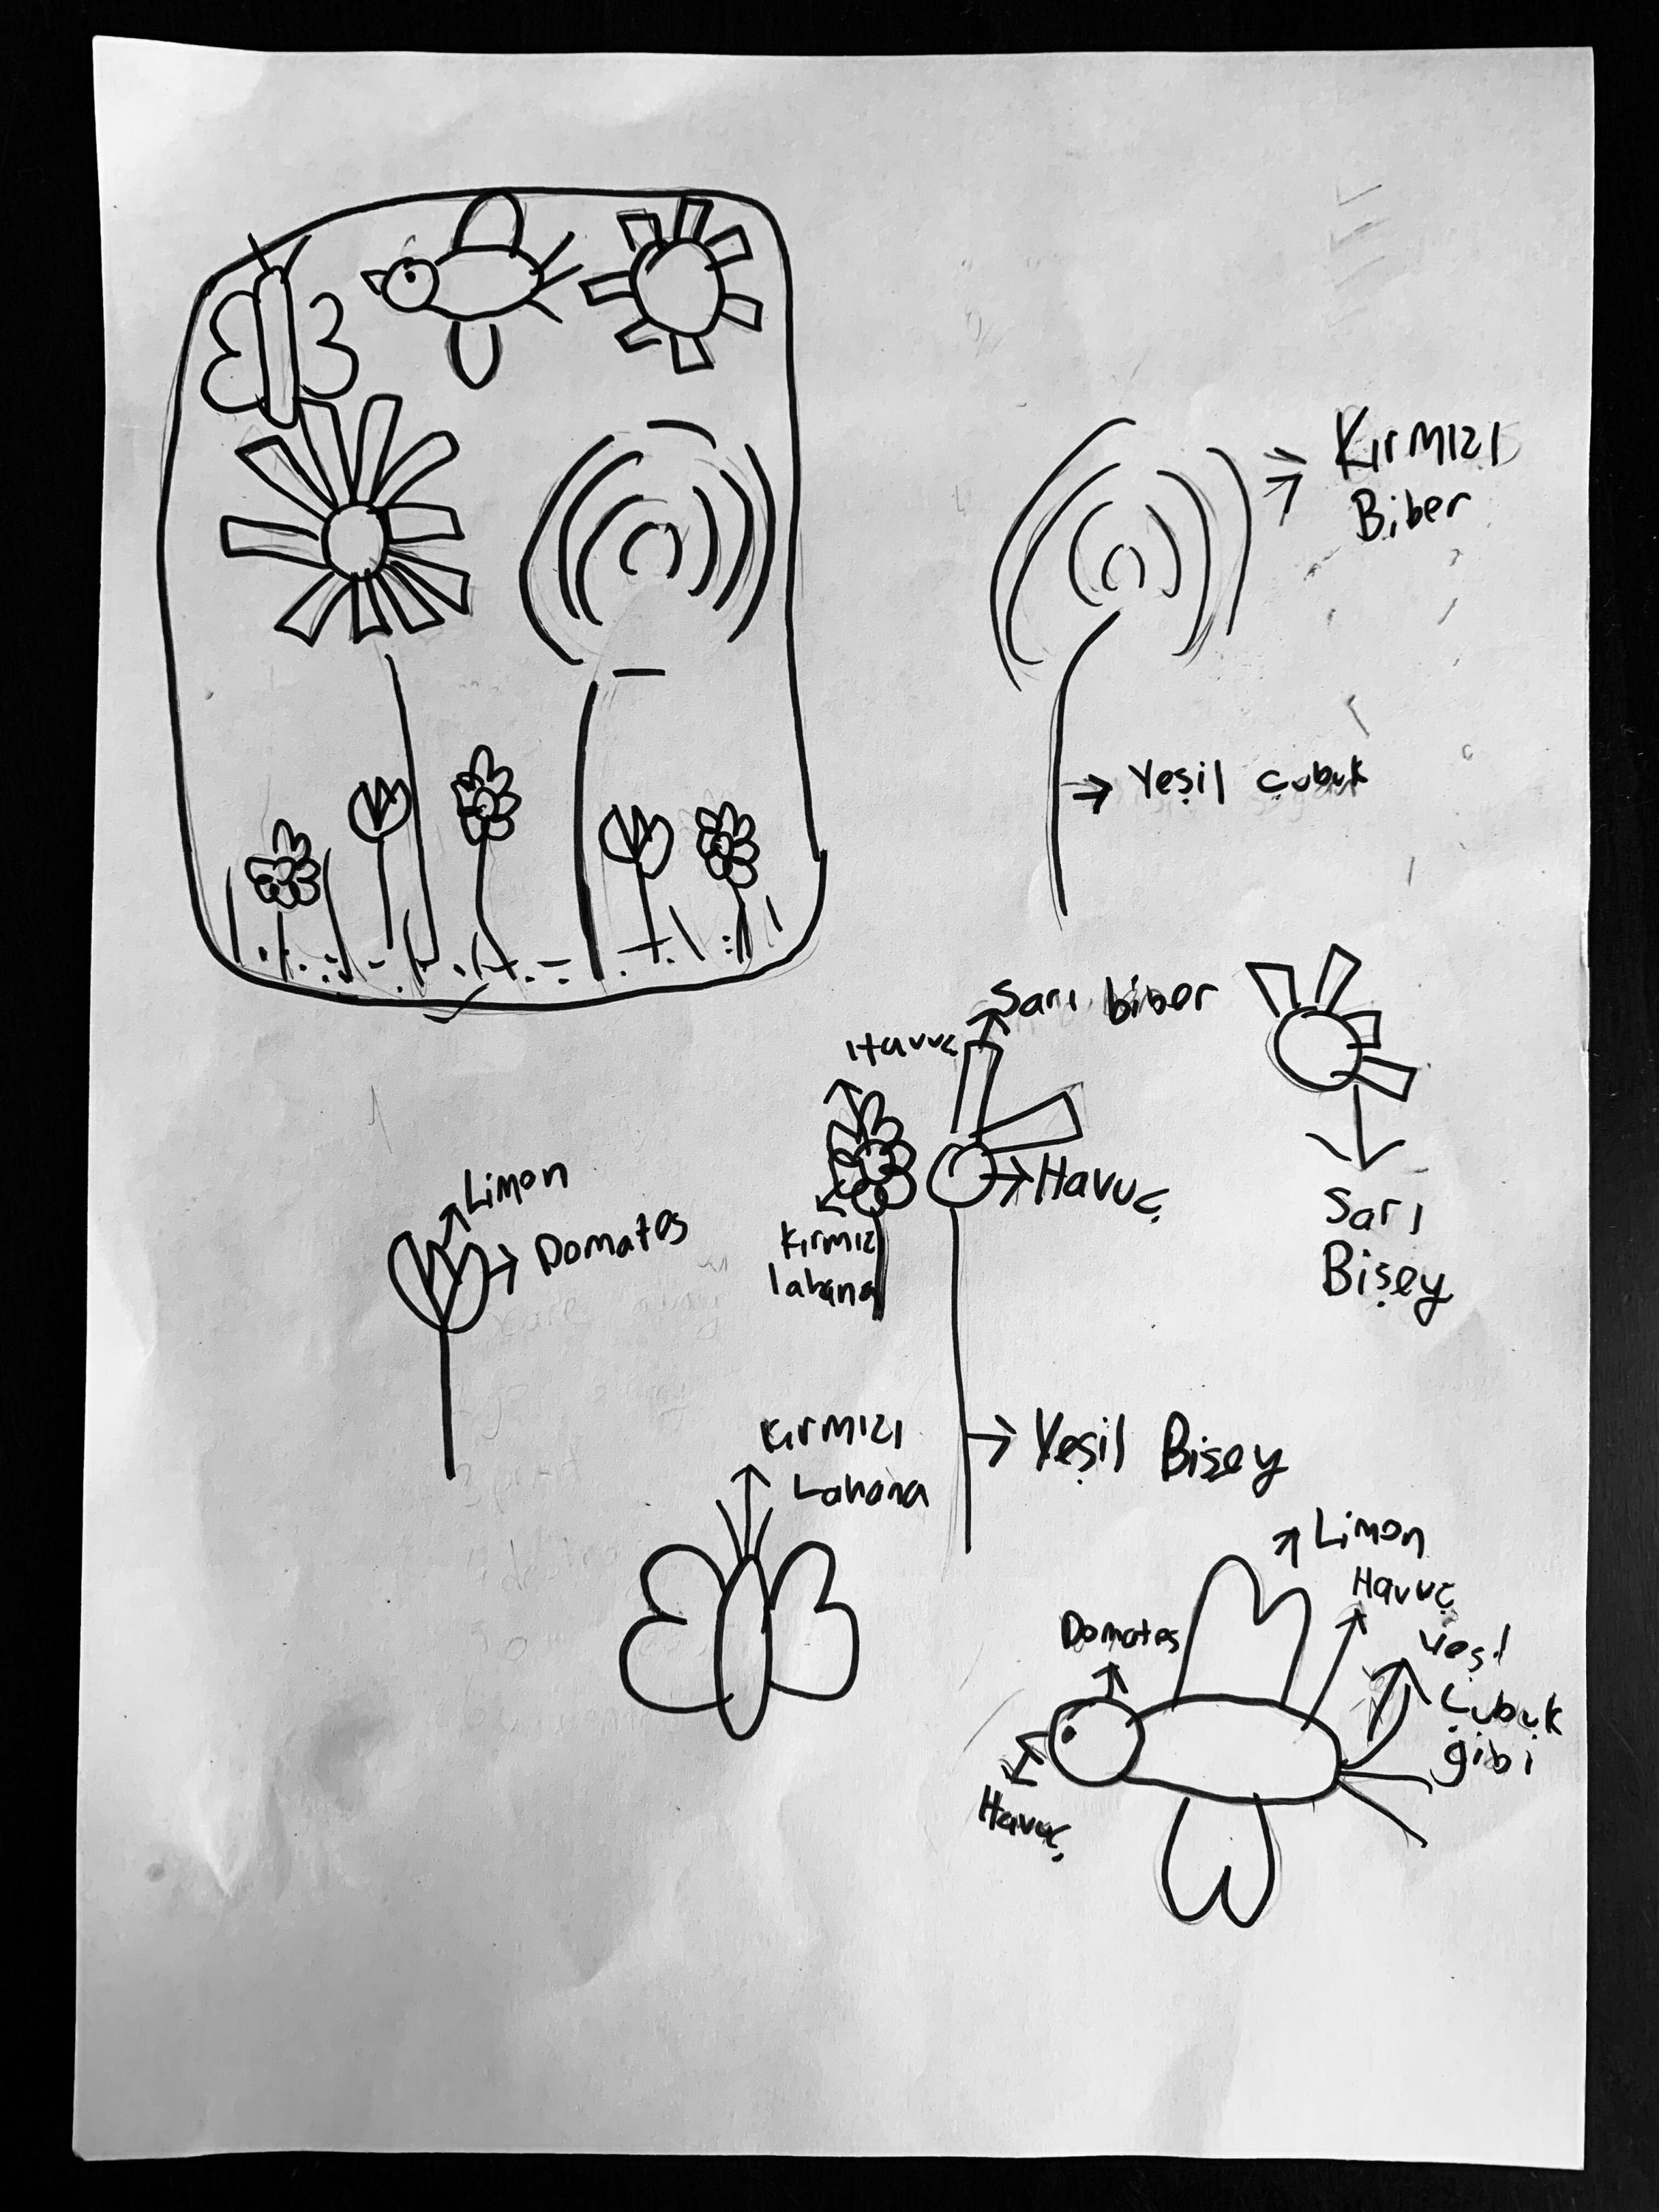 A sketch by Mindy's daughter Meryem. Doing sketches of the designs can be fun for kids. (Photo by Mindy Yartaşı)